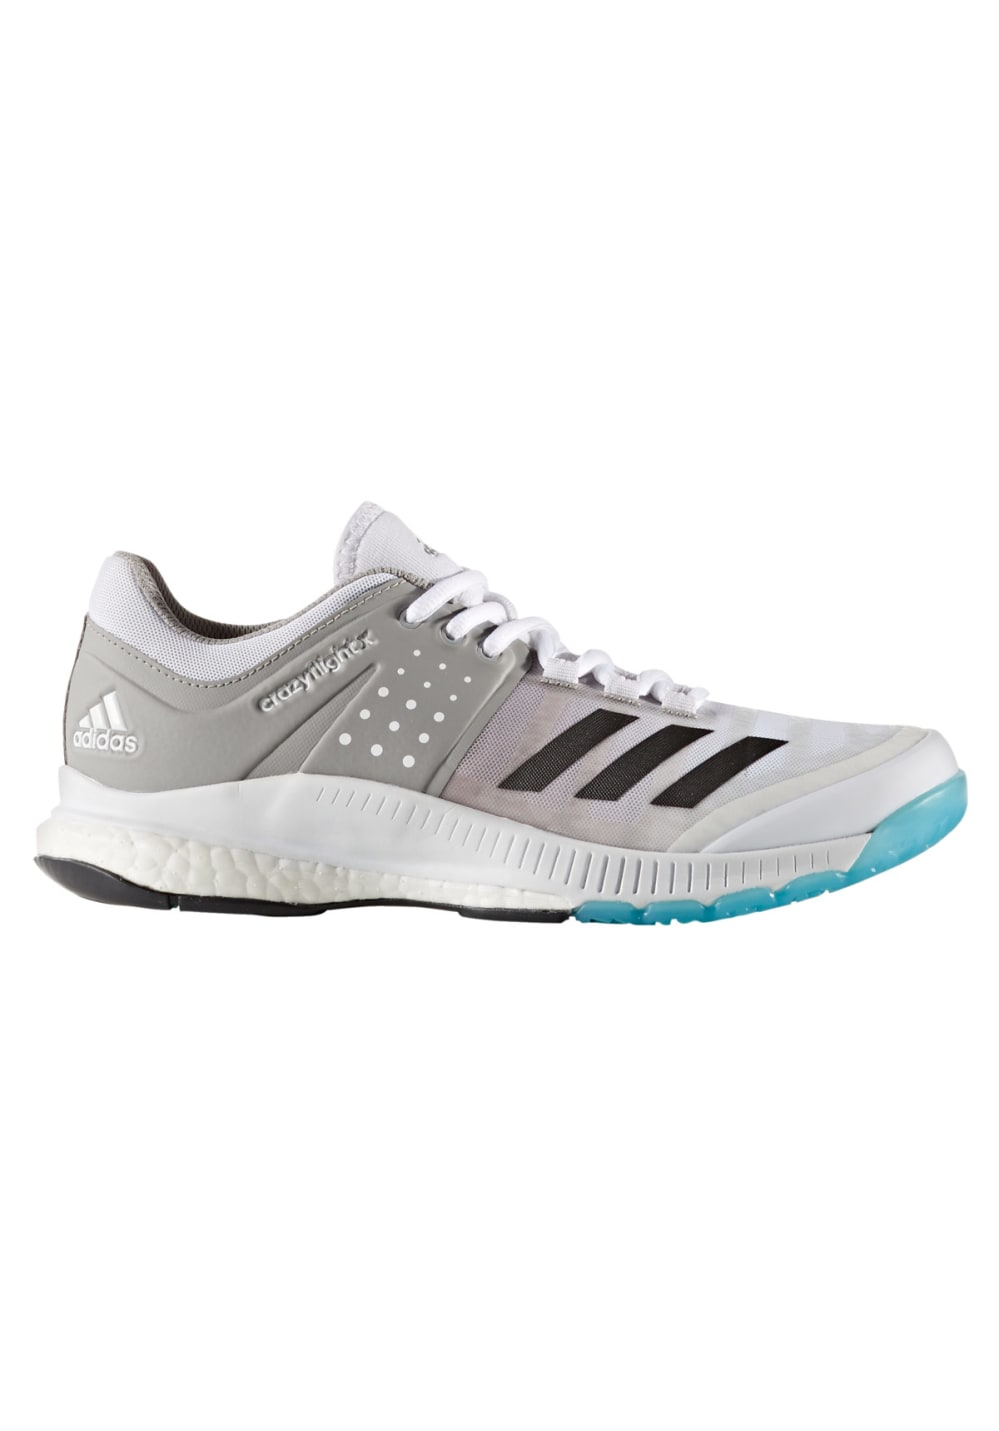 best sneakers 92f88 0e0eb adidas Crazyflight X - Volleyball shoes for Women - Grey